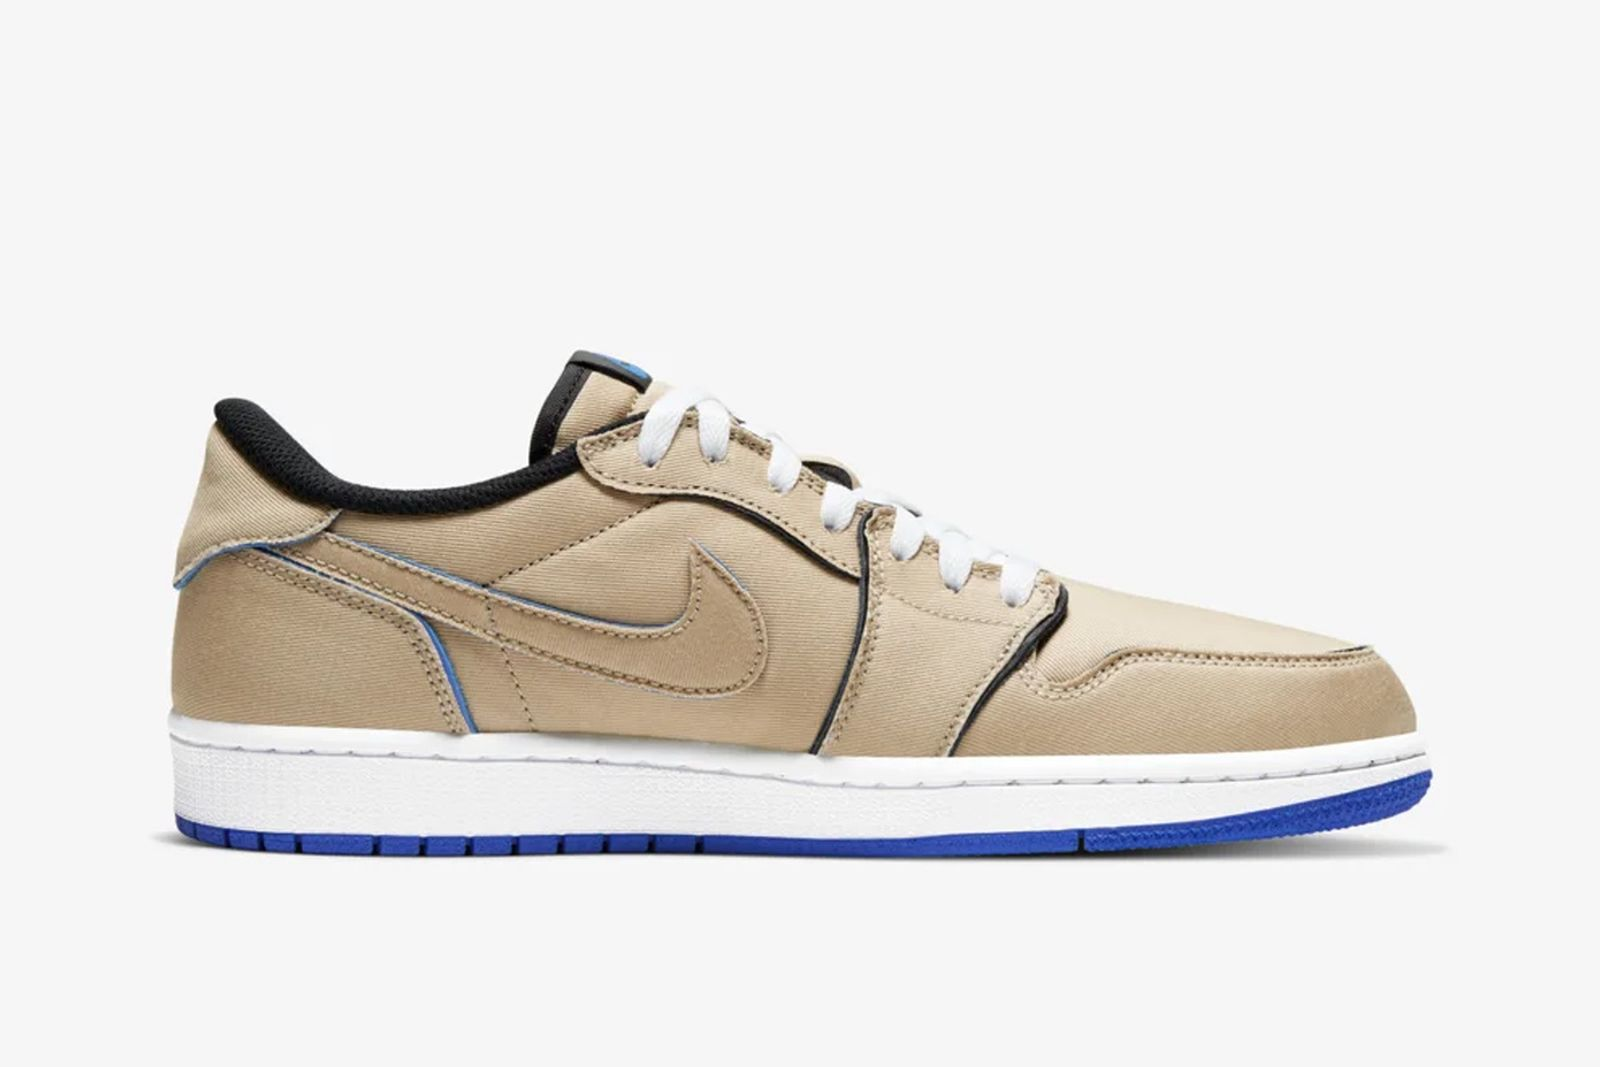 nike-air-jordan-1-low-unc-royal-release-date-price-01